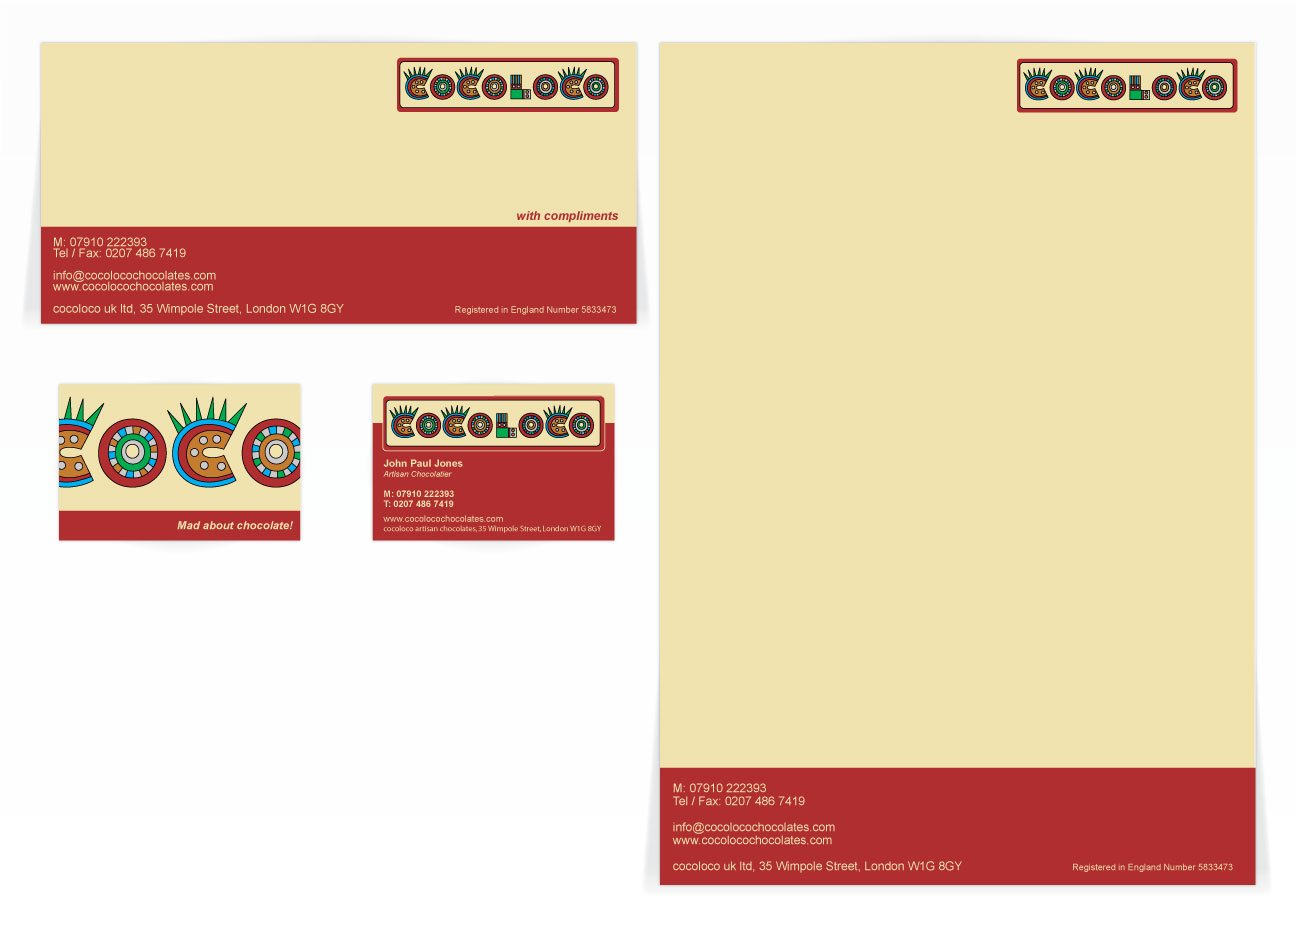 A compliment slip, letterhead and front and back business card design for Cocoloco. Designed by am:pm graphics.